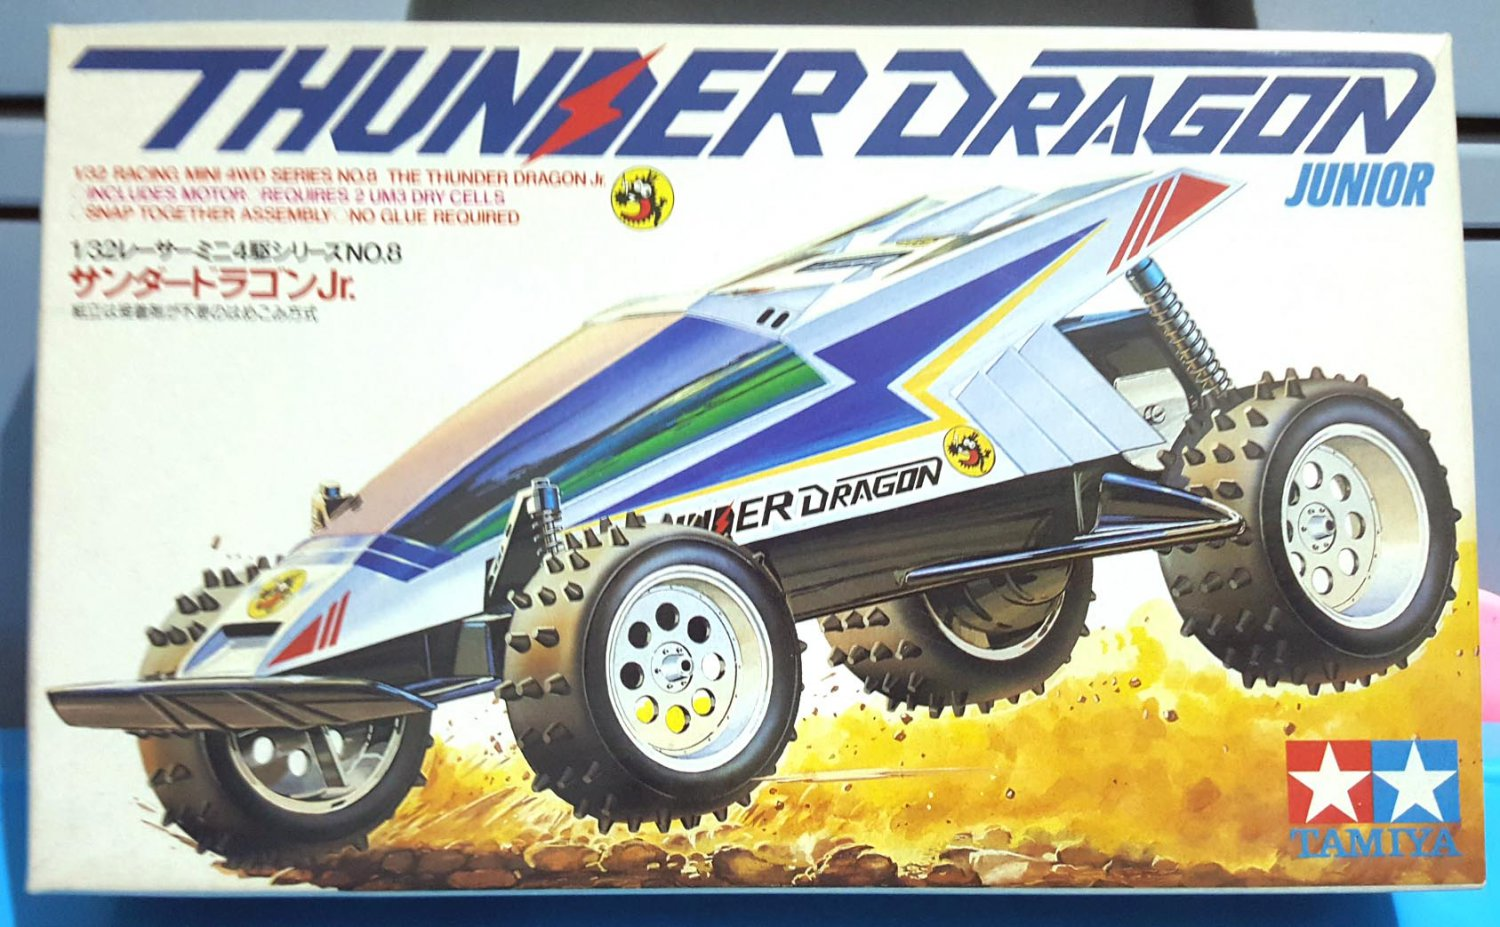 Thunder Dragon Junior Tamiya Mini Racing 4 W/D Scale 1:32 1987 Made In Japan